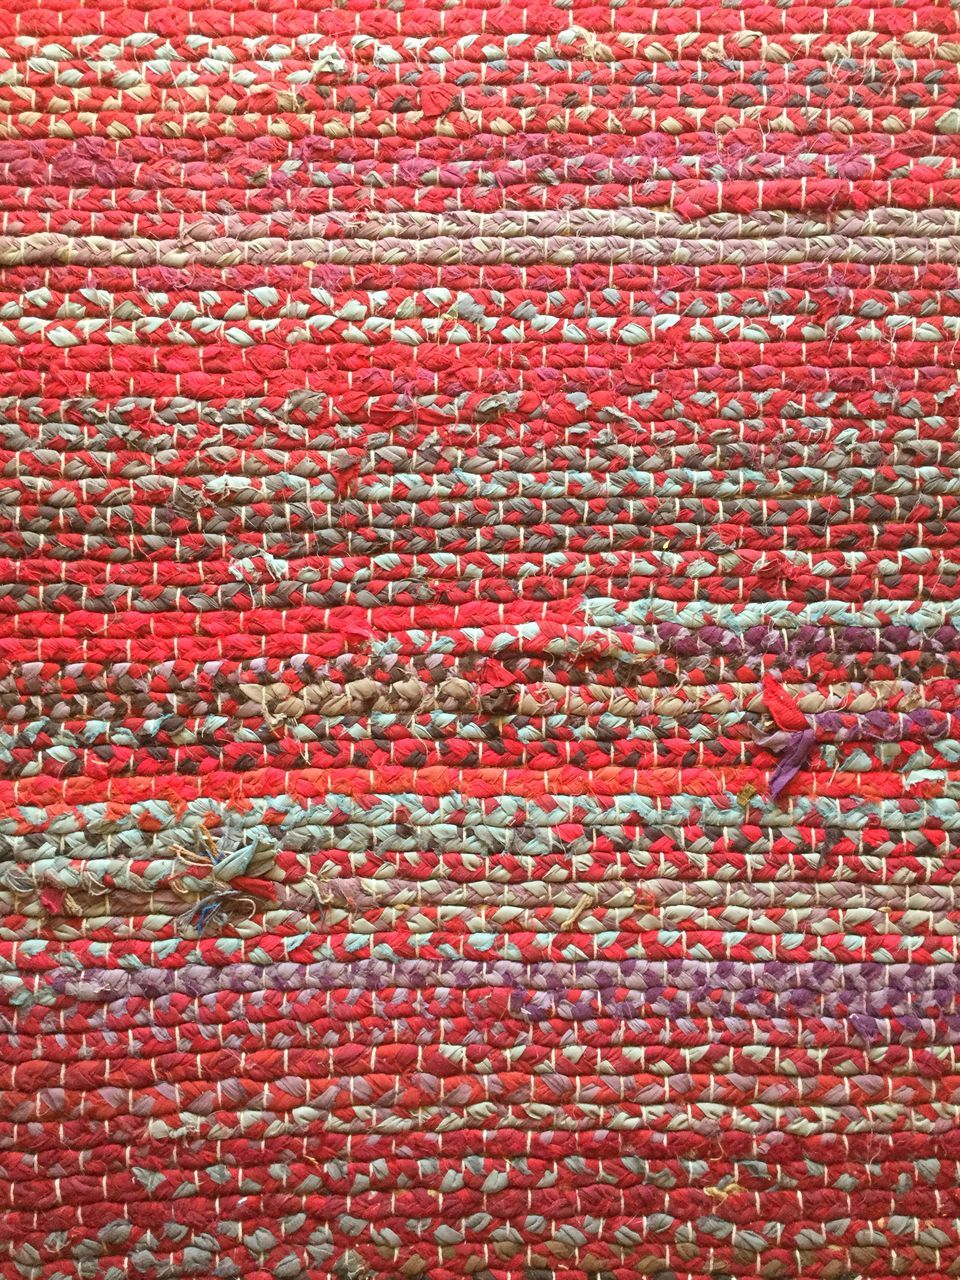 backgrounds, full frame, red, textile, pattern, textured, no people, close-up, indoors, wool, day